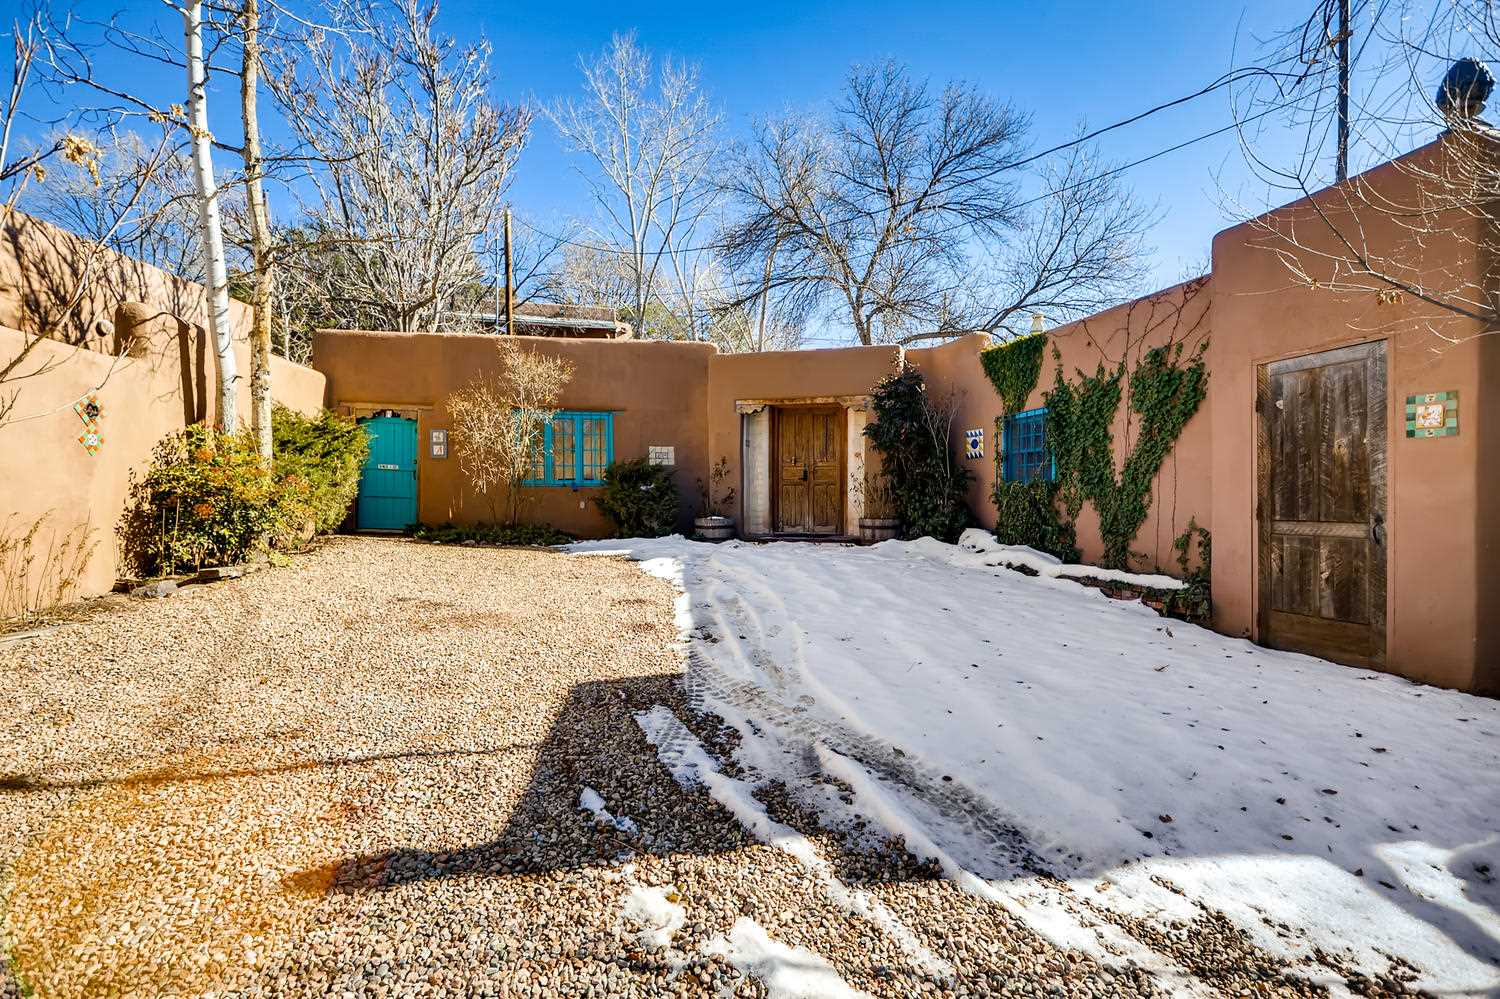 This quintessential Santa Fe Property awaits the creative touches of a new owner.  Located in the historic Eastside, it is a classic estate - the main house with a European feel, a guest house that will make you smile and a free-standing chapel.  The main house is flooded with light from the walls of windows and french doors, and wraps around the interior courtyard, featuring a flagstone patio and tiled fountain.  The guest house includes a striking tiled bath, its own living/dining area, kitchen, and a rare basement that includes a laundry.  The property is accented with a collection of tiles from all over the world.